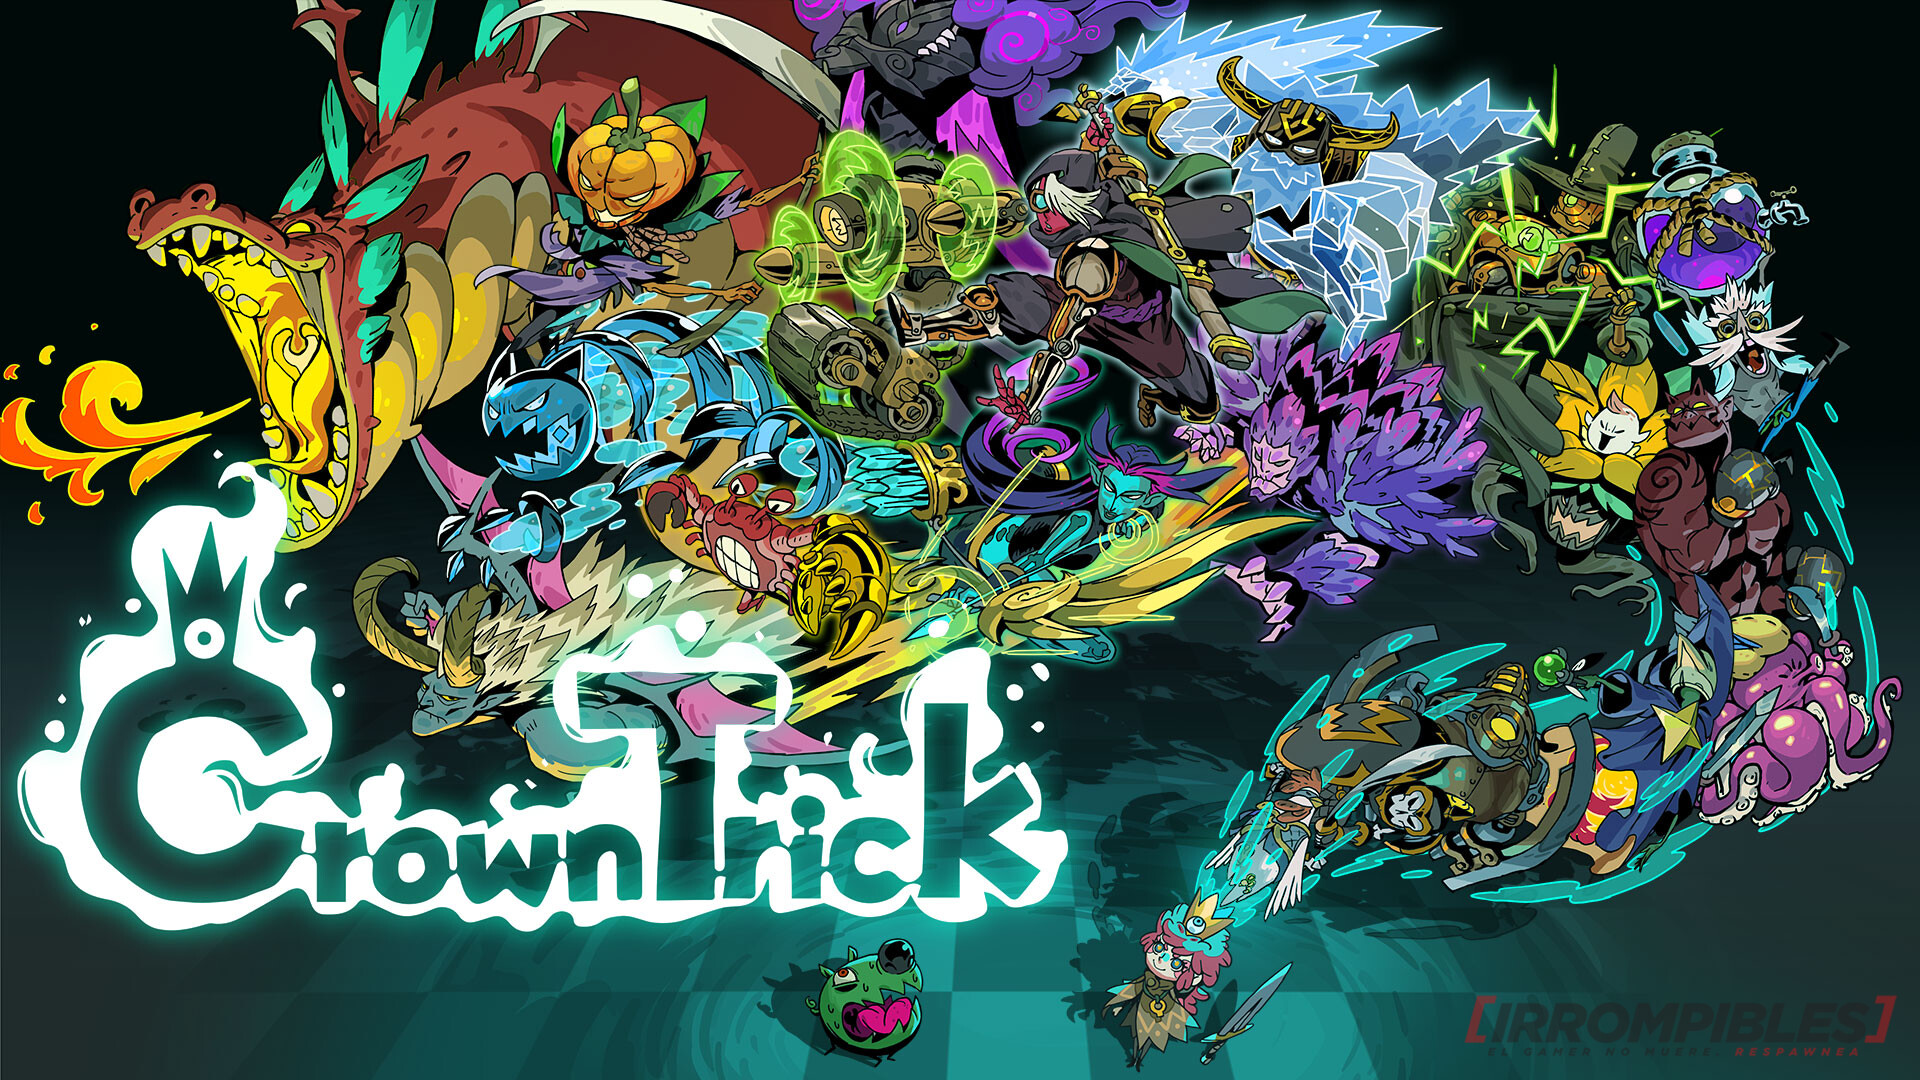 crown trick key art